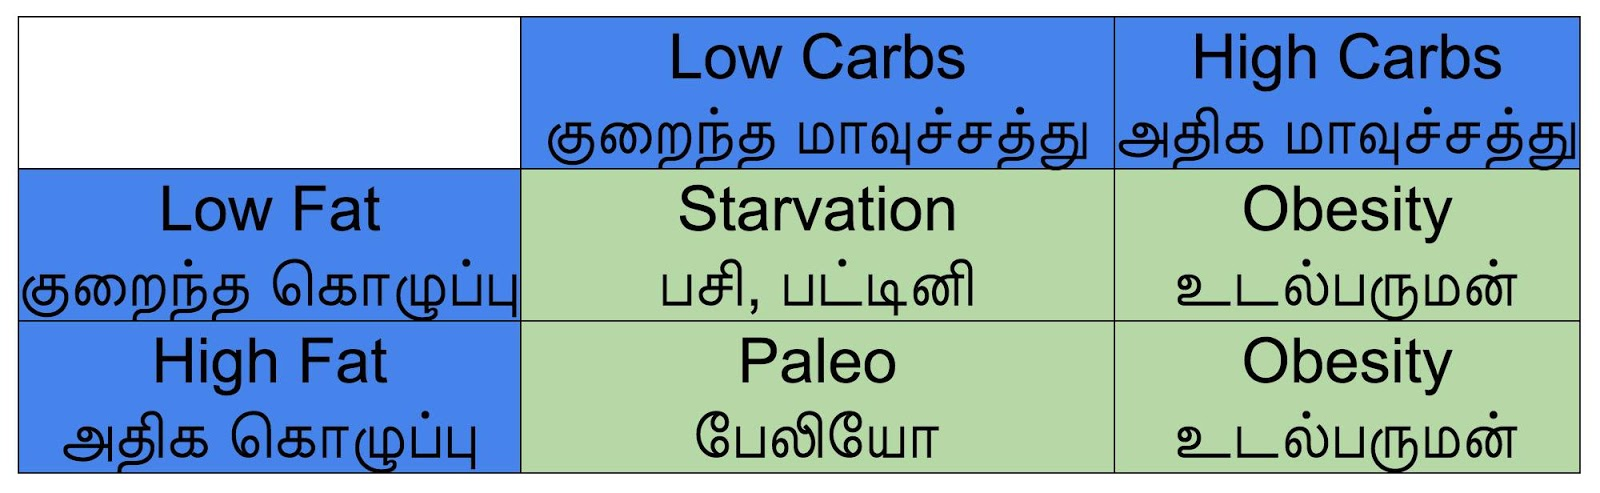 Low Carb High Carb Low Fat High Fat Obesity Starvation Paleo